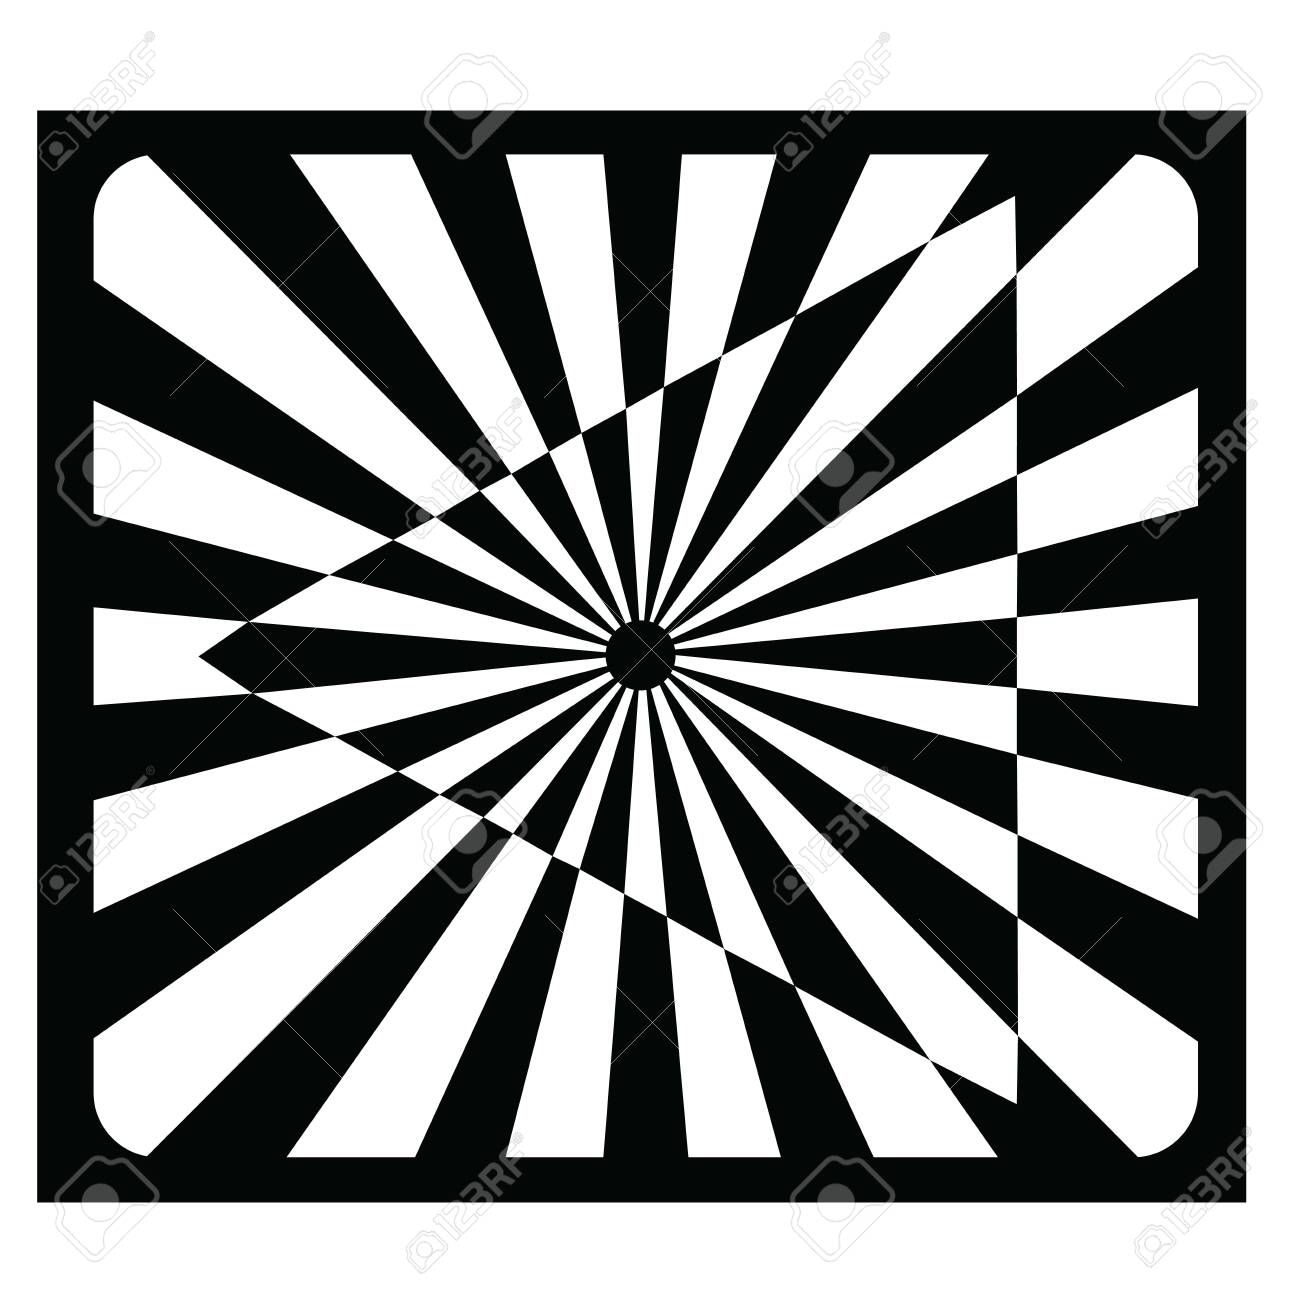 An opt art illustration of an optical illusion created with black and white shapes of rectangles, triangles, a rounded rectangle and a circle. - 130400267